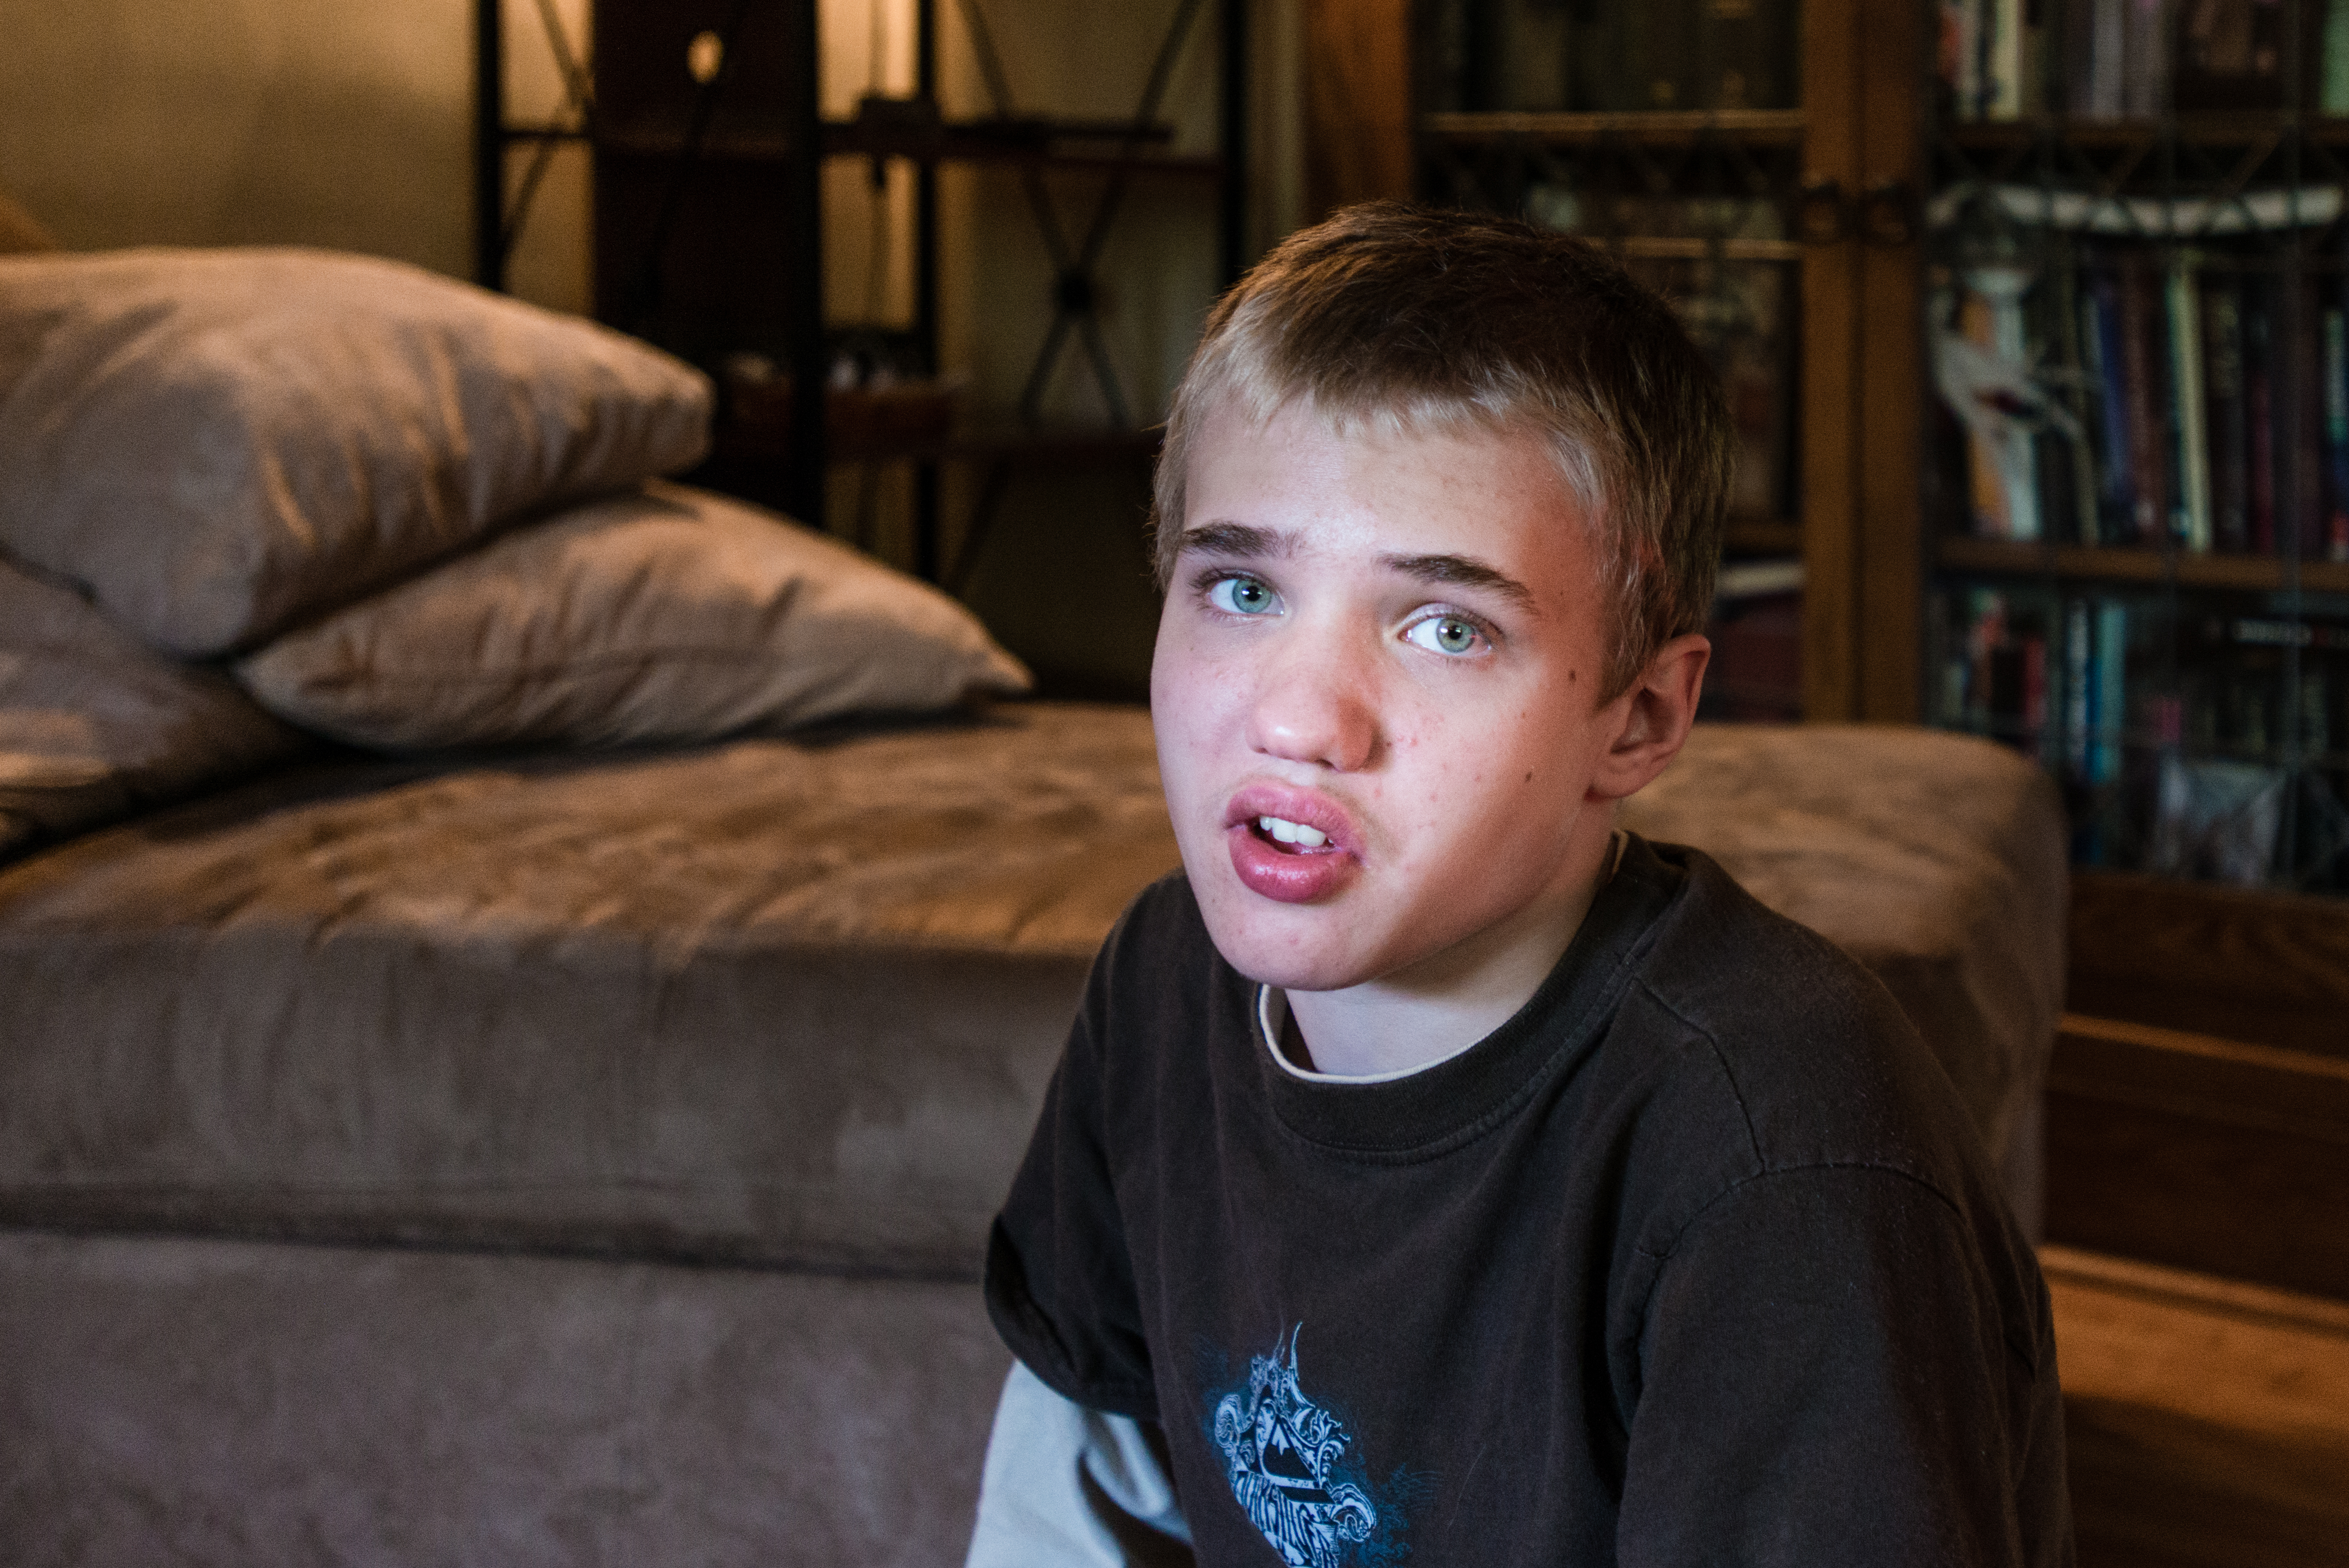 Alexander Brown, 14, sits in his living room on Thursday, May 14, 2015. He was diagnosed with autism at 18 months. Alexander is having a hard time with puberty and is lashing out physically (Photo by Heidi de Marco/KHN).